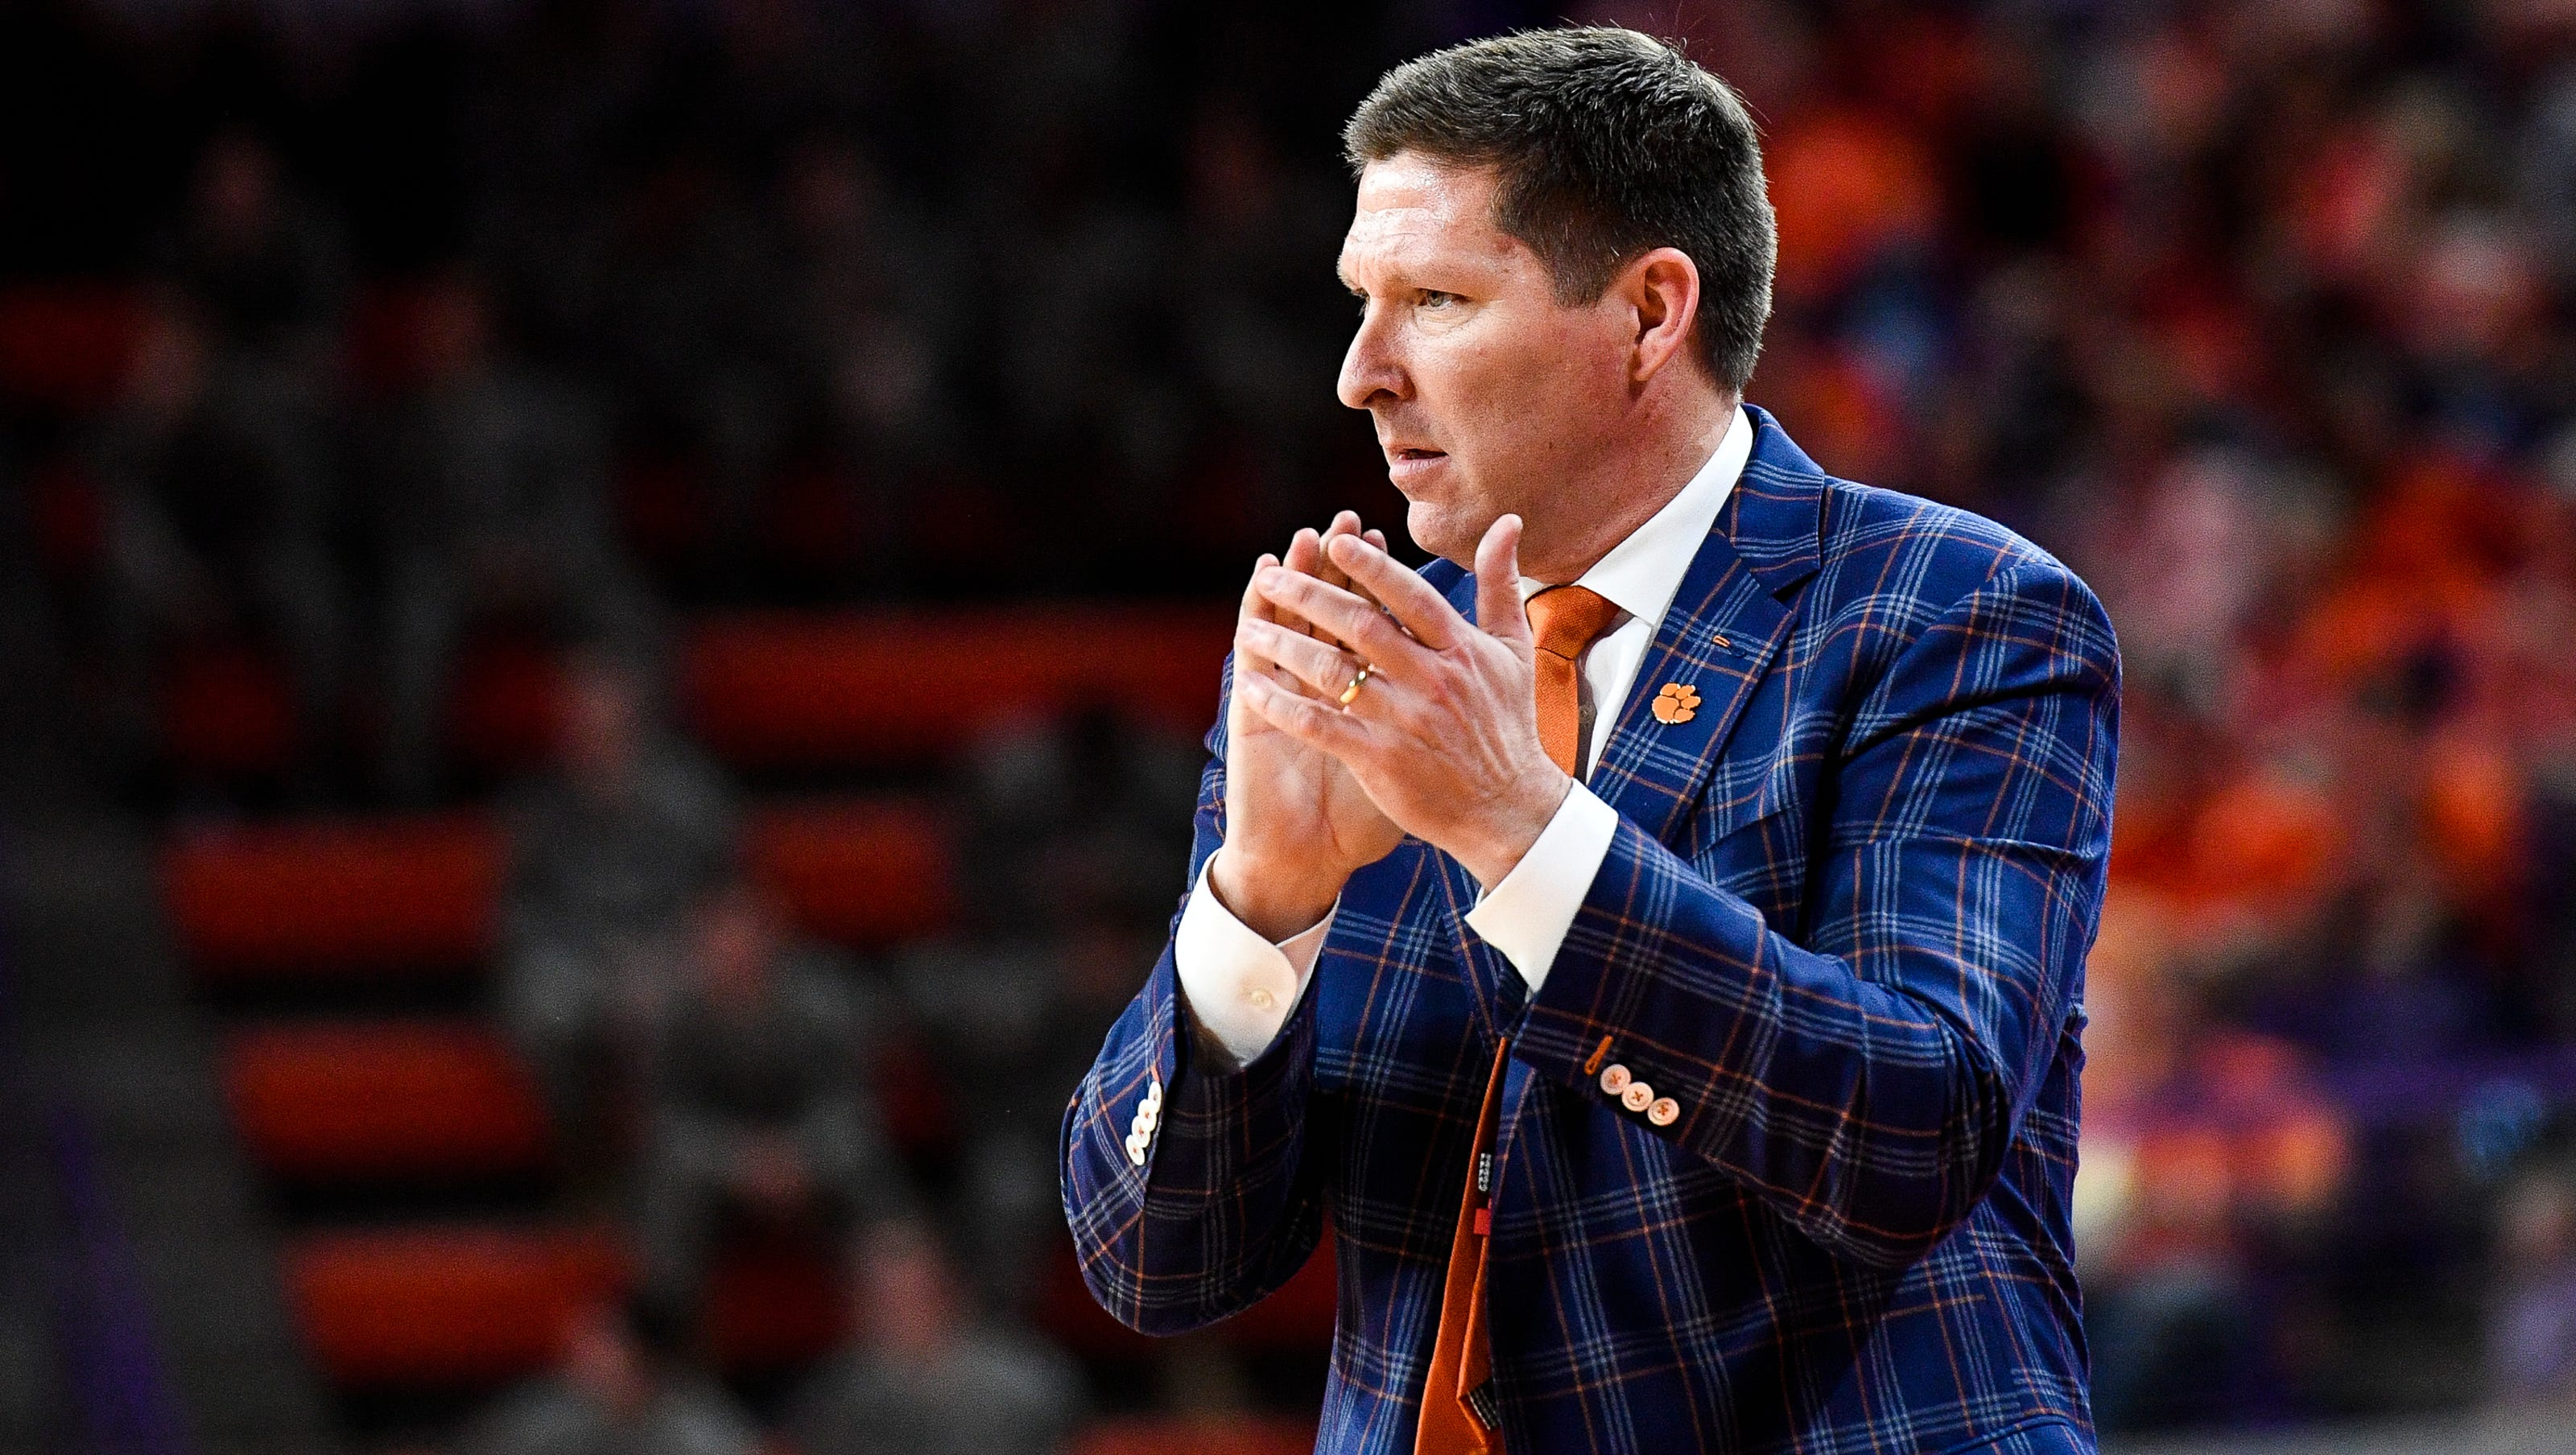 So Where Does Clemson S Brad Brownell Stack Up Vs Other Acc Coaches